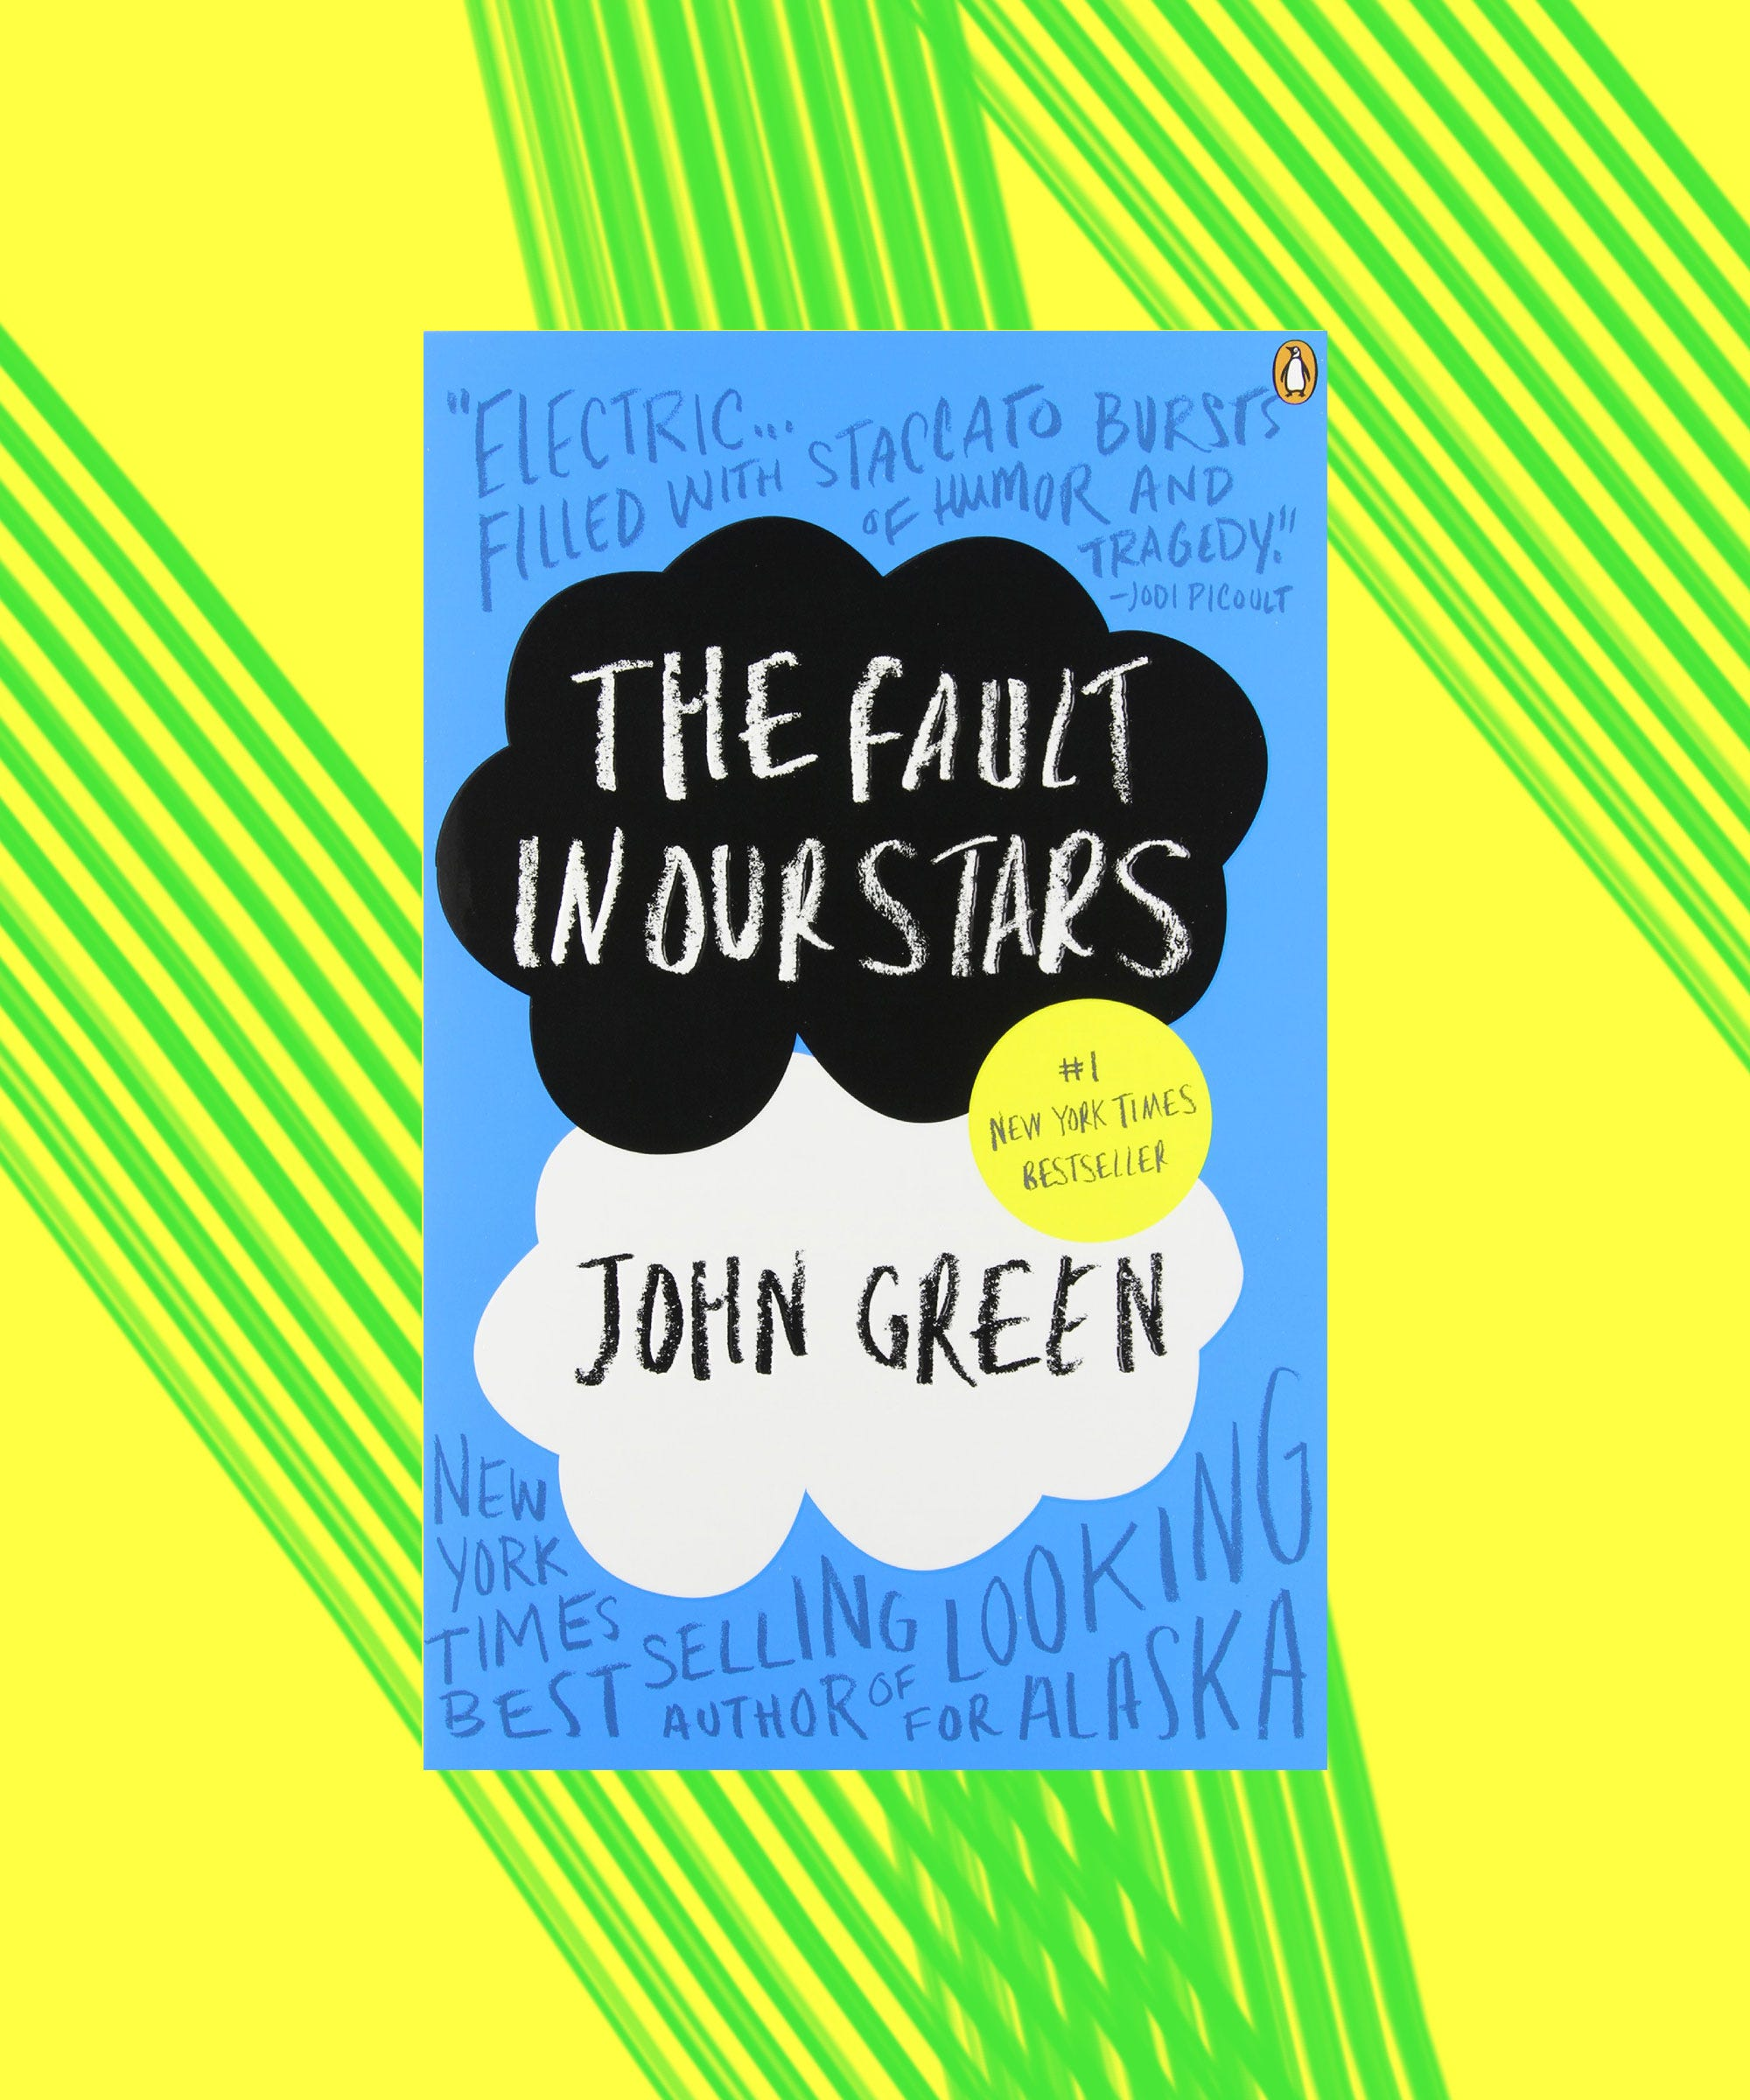 saddest books to fiction nonfiction sad stories these are the saddest books you ll ever read